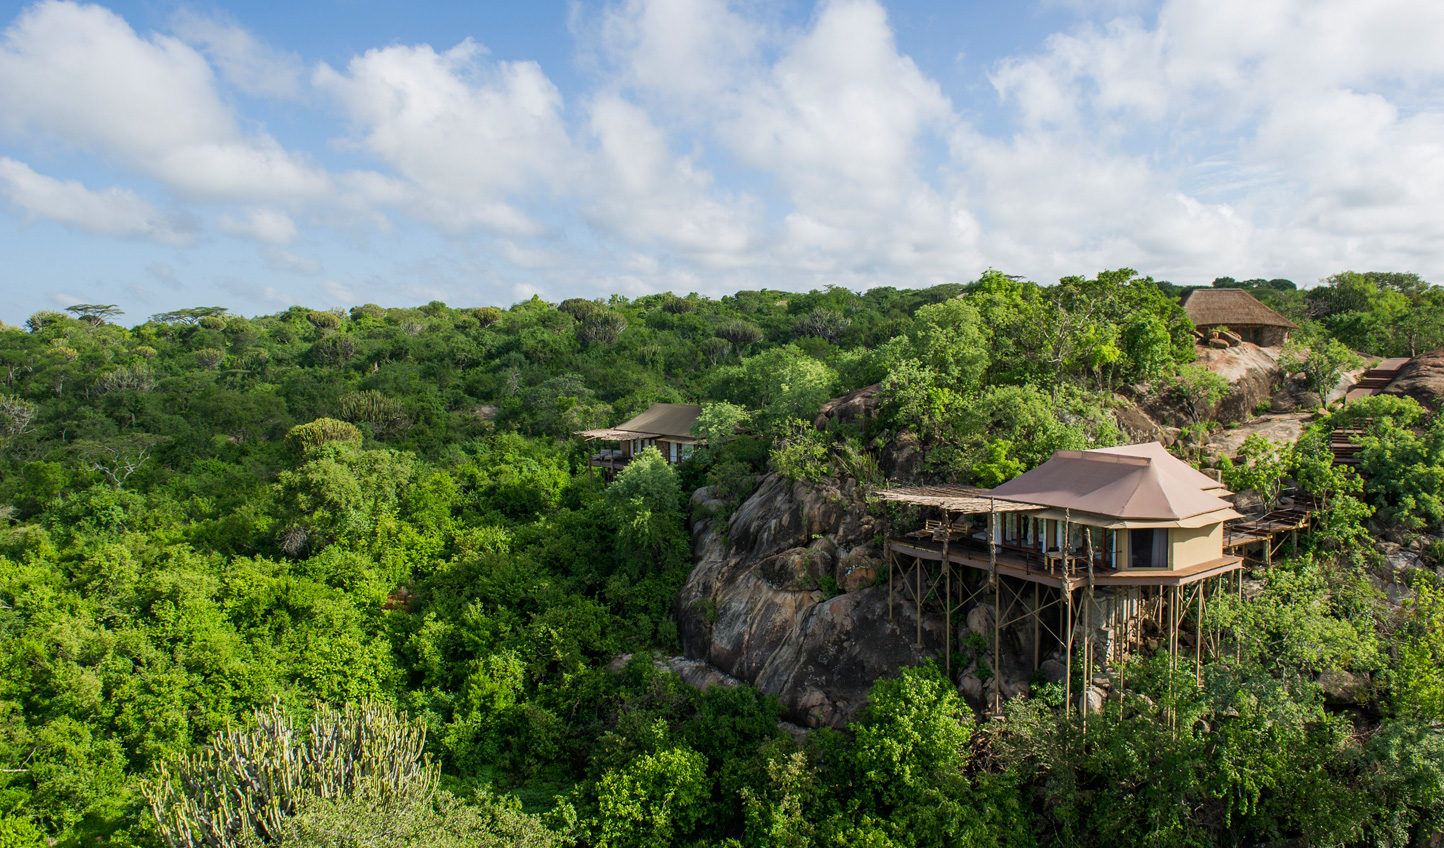 Mwiba offers your own private adventure in a secluded location